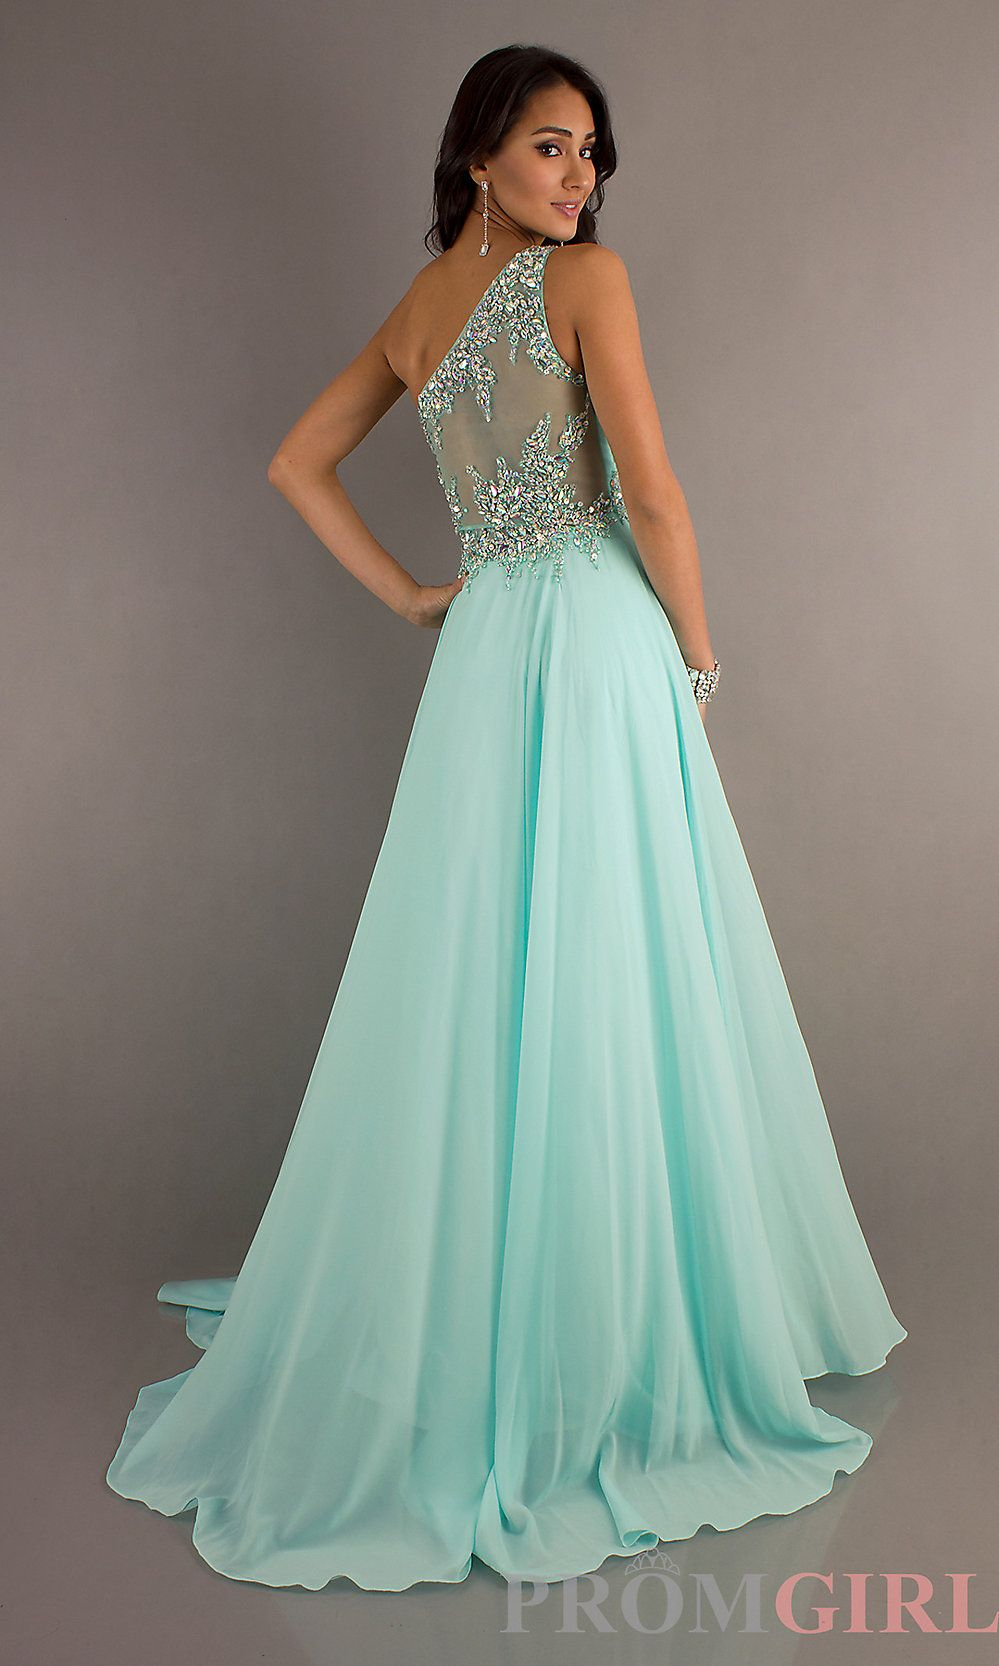 2013 tiffany long prom dresses one shoulder prom gowns